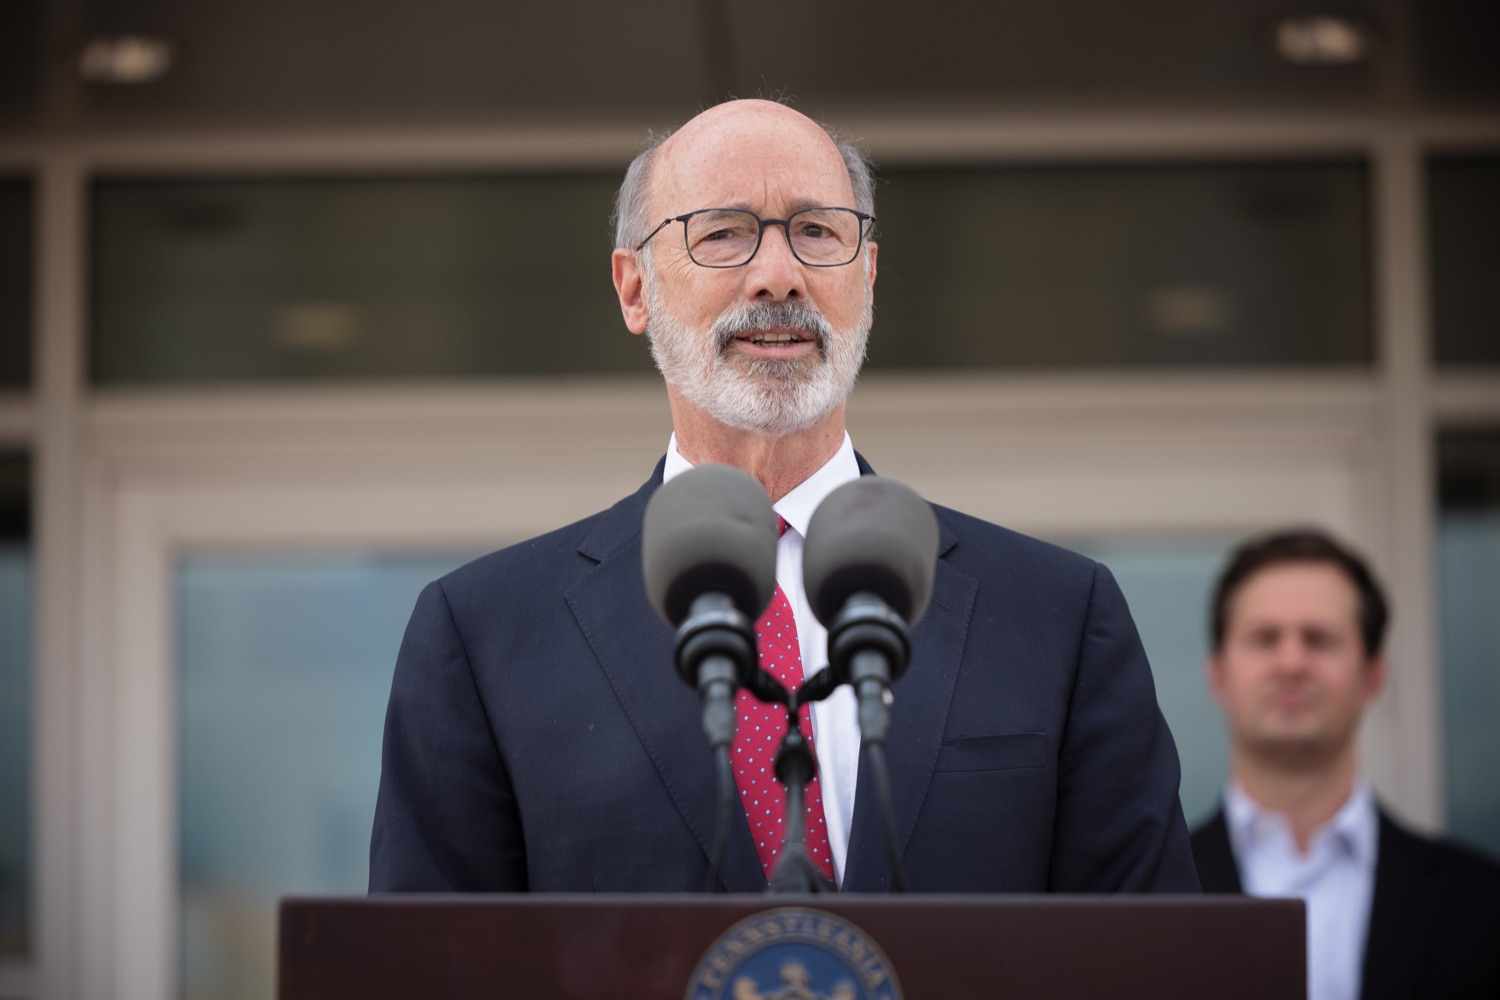 """<a href=""""https://filesource.wostreaming.net/commonwealthofpa/photo/20126_gov_economicDevelopment_dz_020.jpg"""" target=""""_blank"""">⇣Download Photo<br></a>Pennsylvania Governor Tom Wolf speaking with the press.  Governor Tom Wolf joined Clemens Food Group leaders, Agriculture Secretary Russell Redding, Sen. Maria Collett, Rep. Steve Malagari and members of the Governors Action Team today to tour the construction of the companys new facility in Montgomery County. The Wolf Administration supported the project which will expand the business operations and create new jobs in the region. Hatfield, PA   October 8, 2021"""